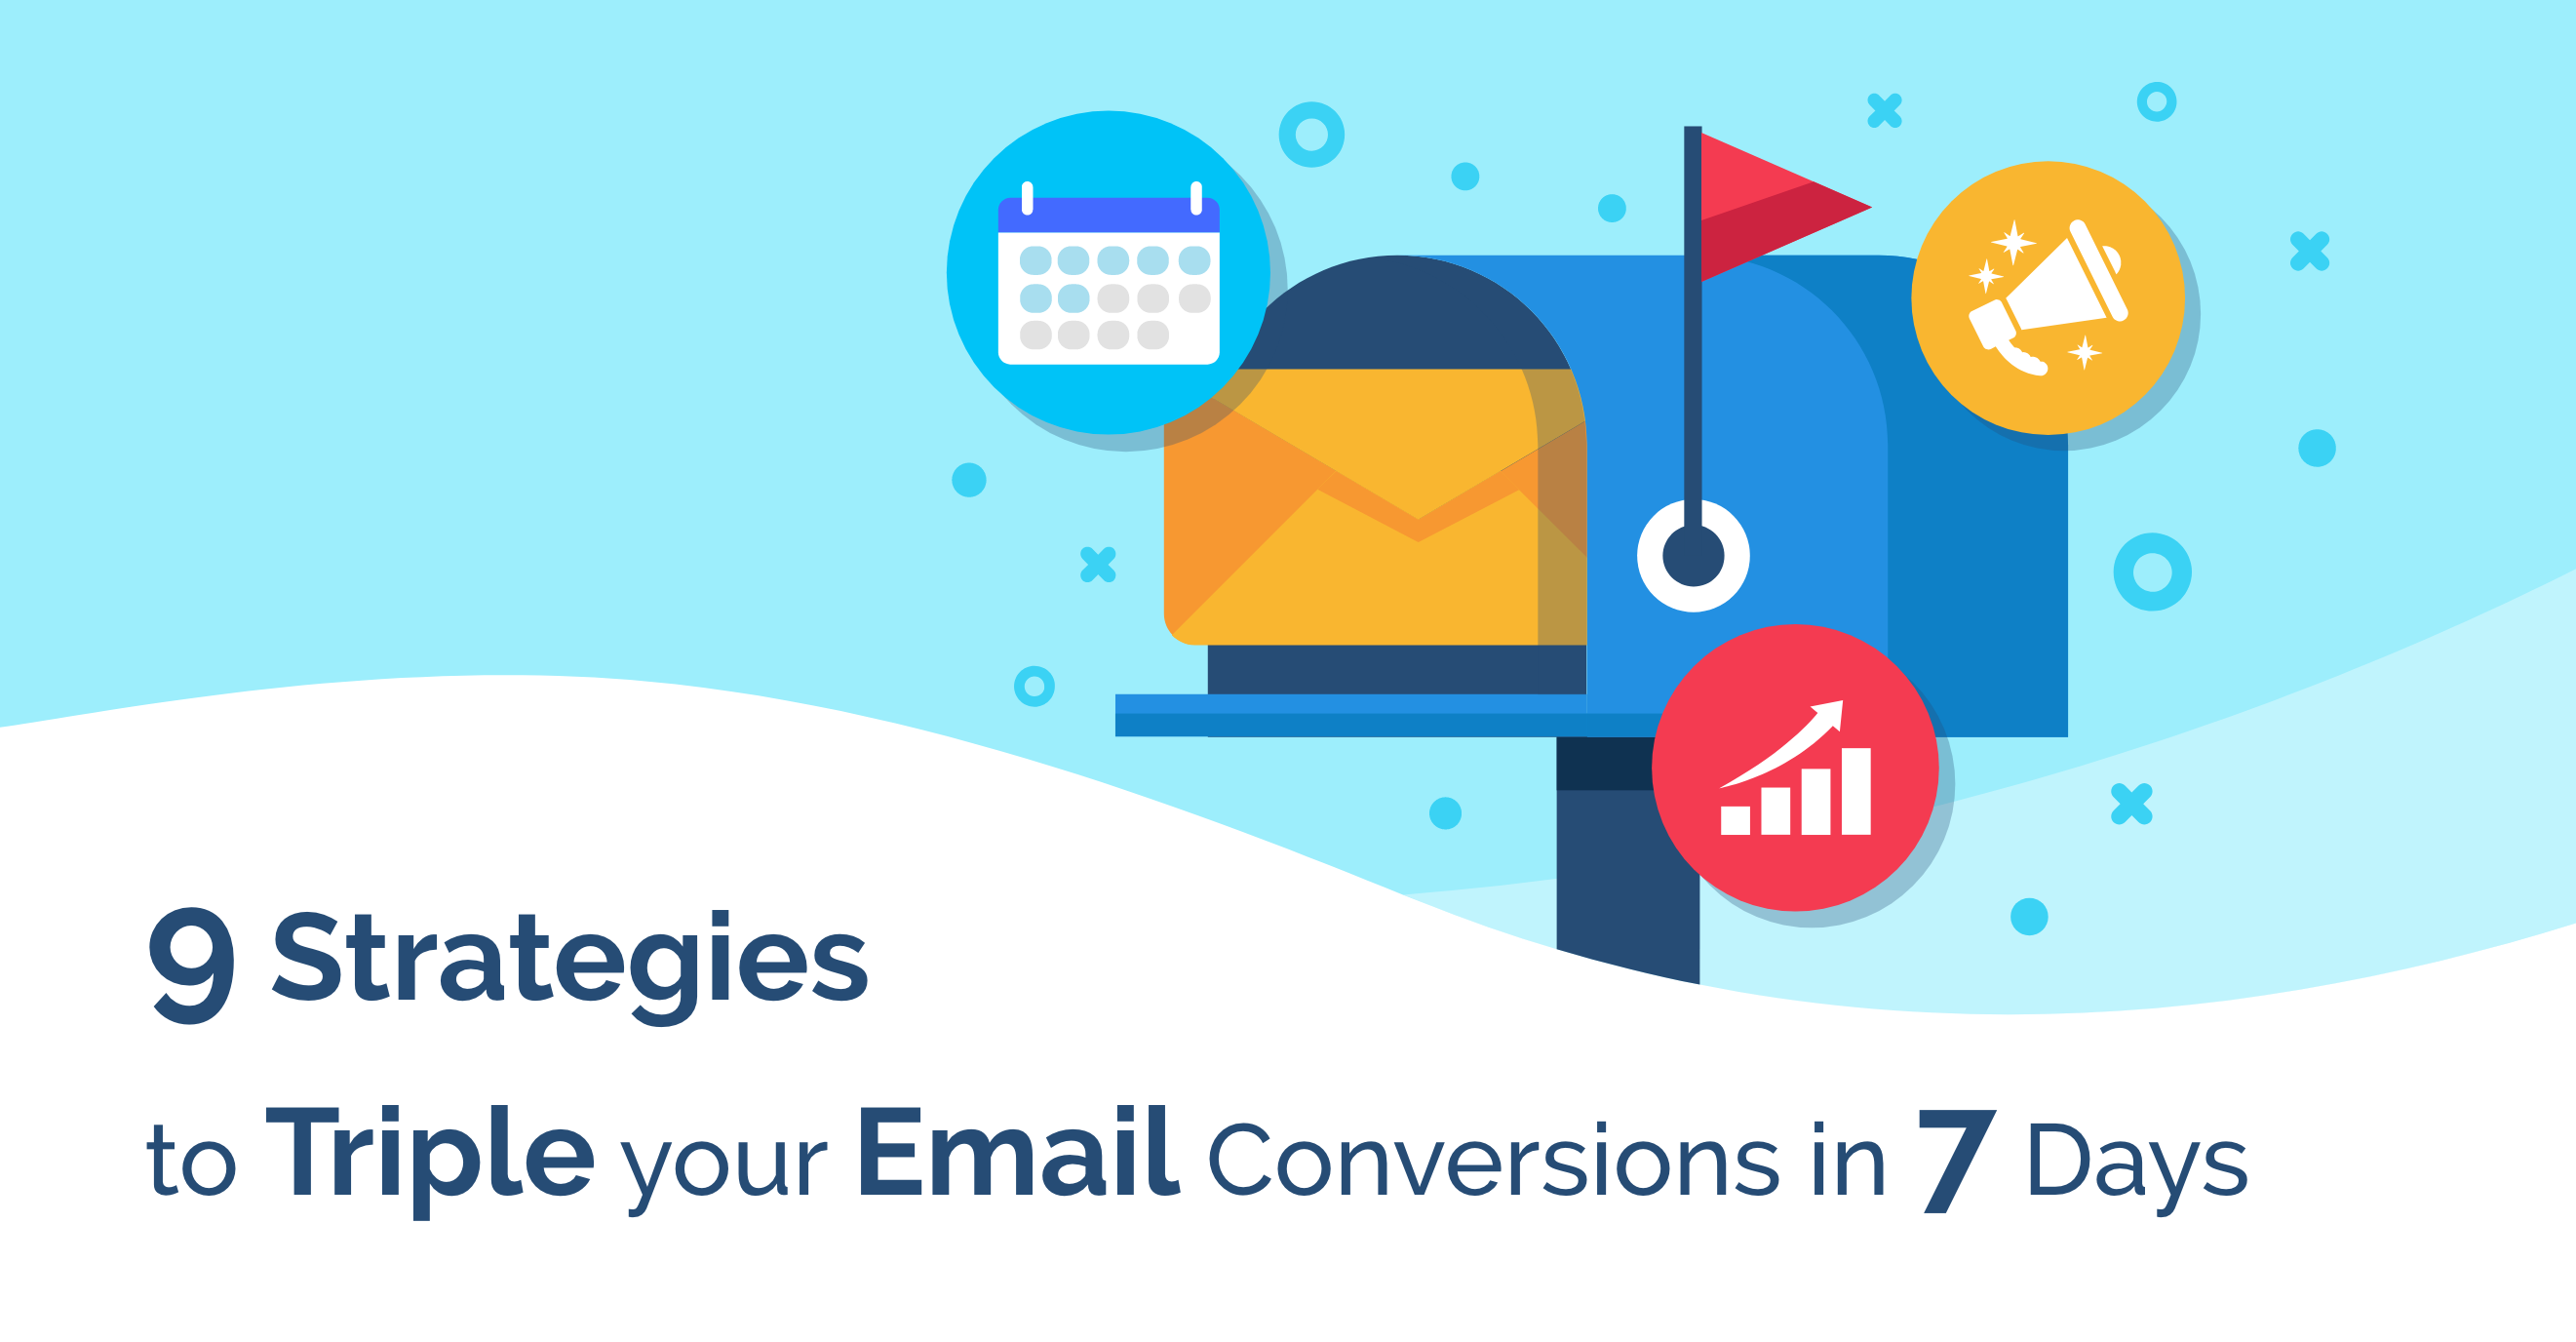 Email Marketing Strategies - ContentStudio